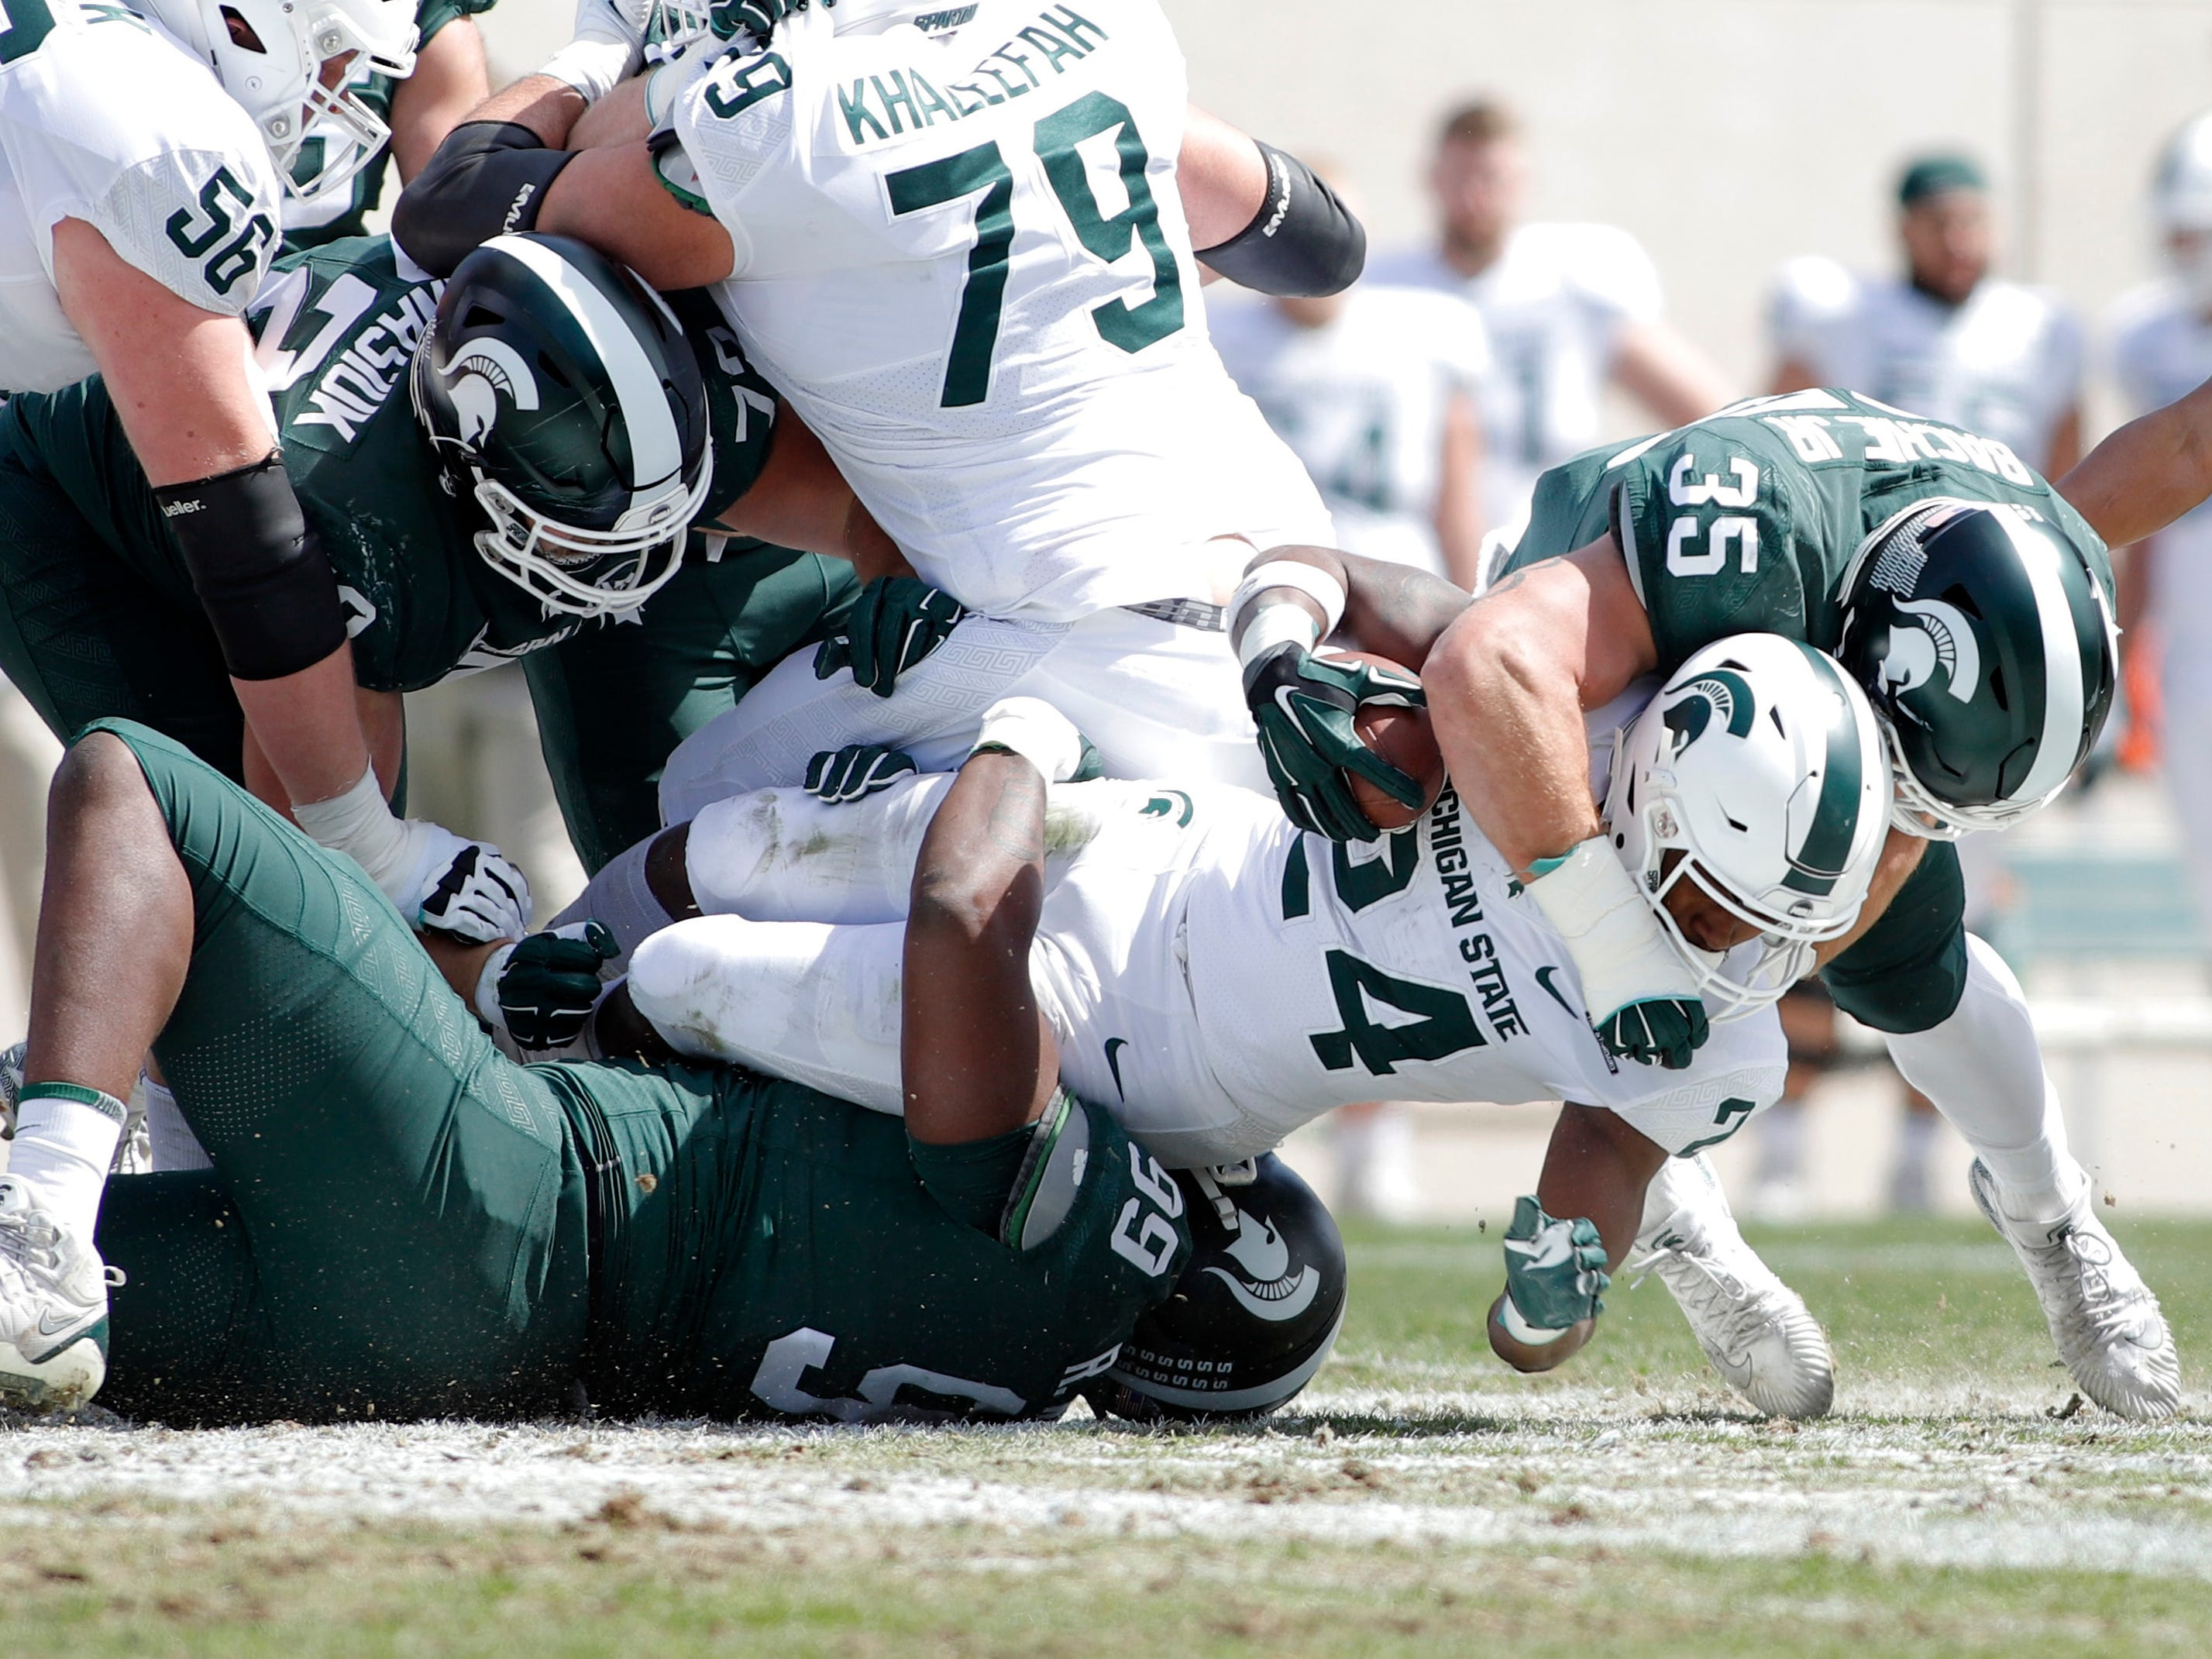 Michigan State's Joe Bachie, right, and Raequan Williams, bottom, tackle Elijah Collins (24) during an NCAA college football spring scrimmage game, Saturday, April 13, 2019, in East Lansing, Mich. (AP Photo/Al Goldis)